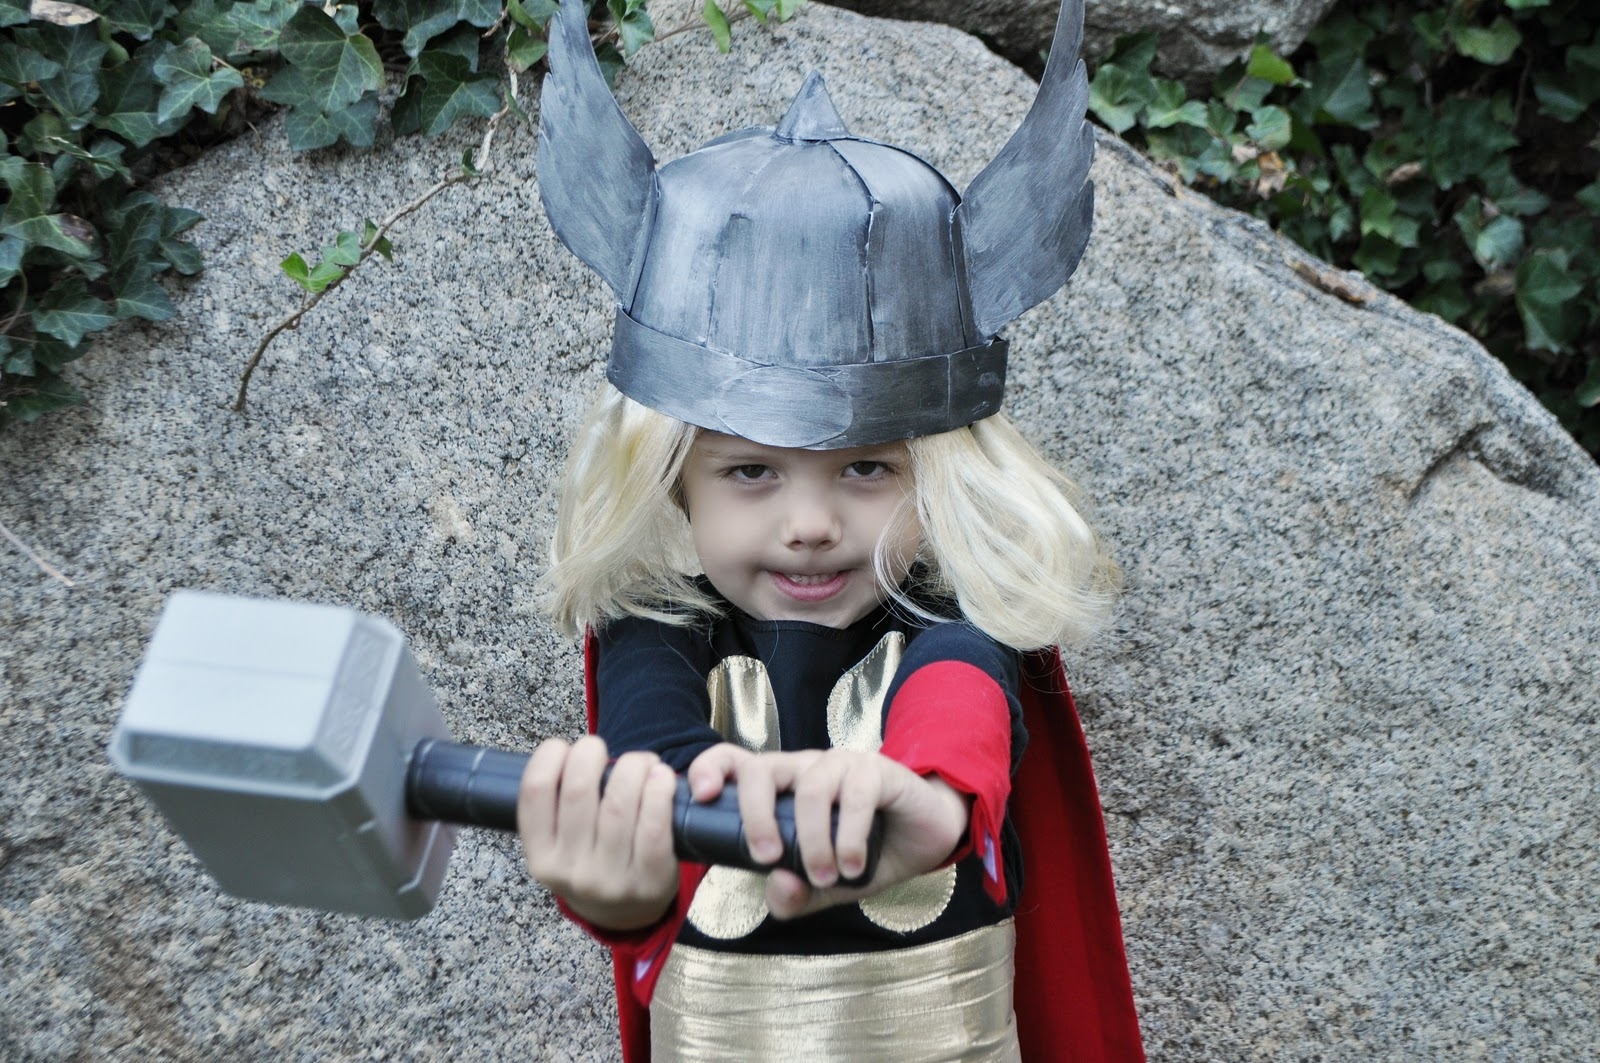 And there you have it.  sc 1 st  I Am Momma - Hear Me Roar & I Am Momma - Hear Me Roar: Thor Costume (for DailyBuzz Moms 9x9)